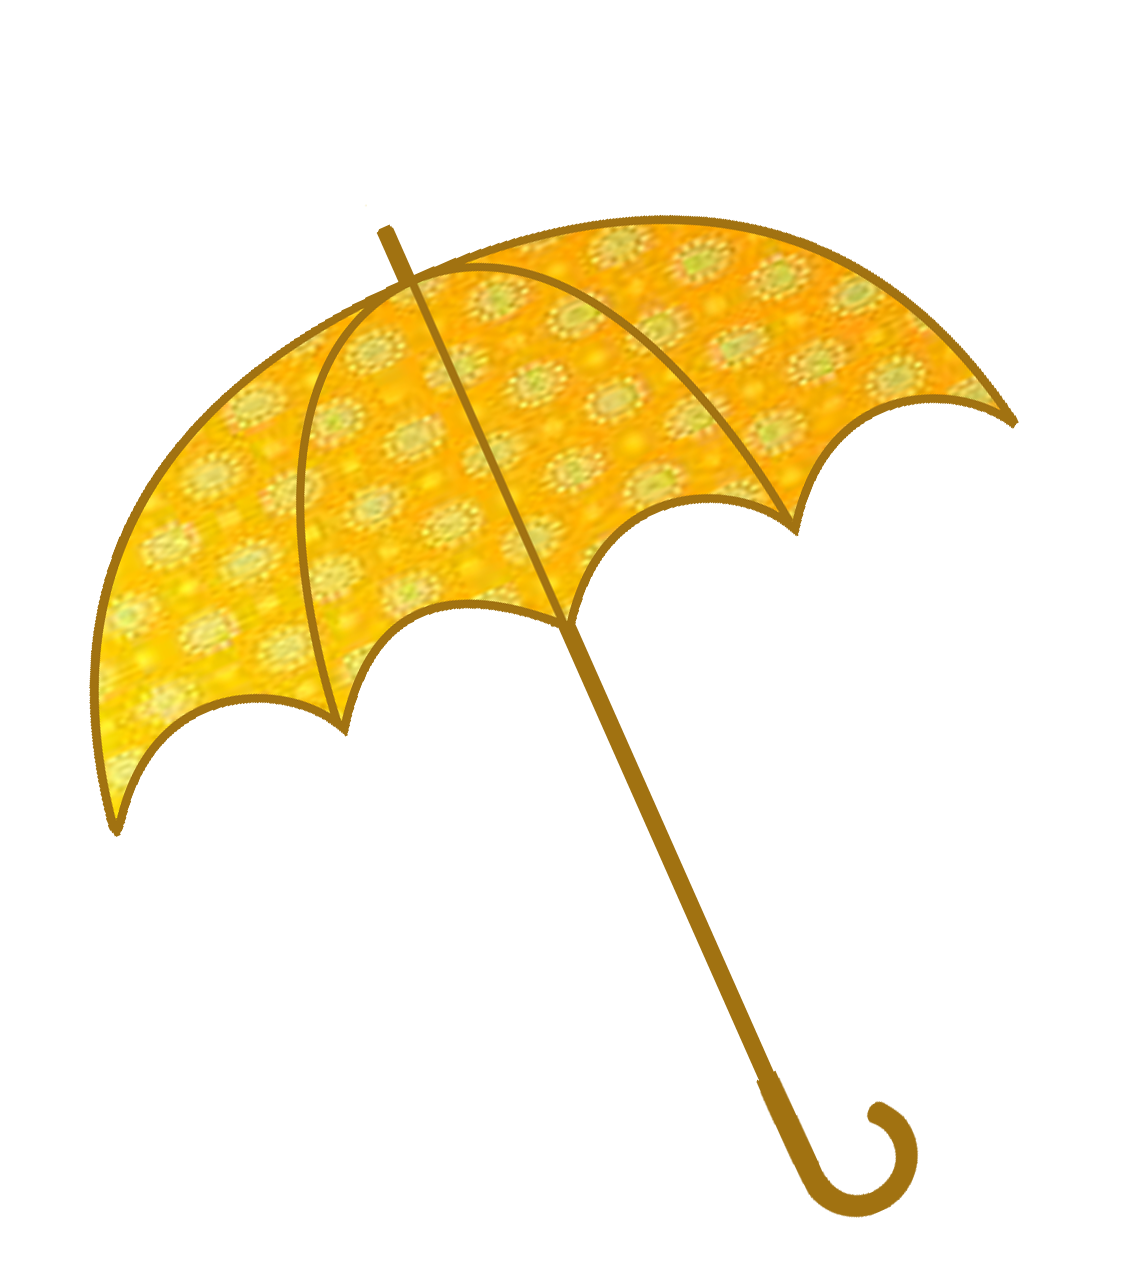 umbrella clipart golden pattern